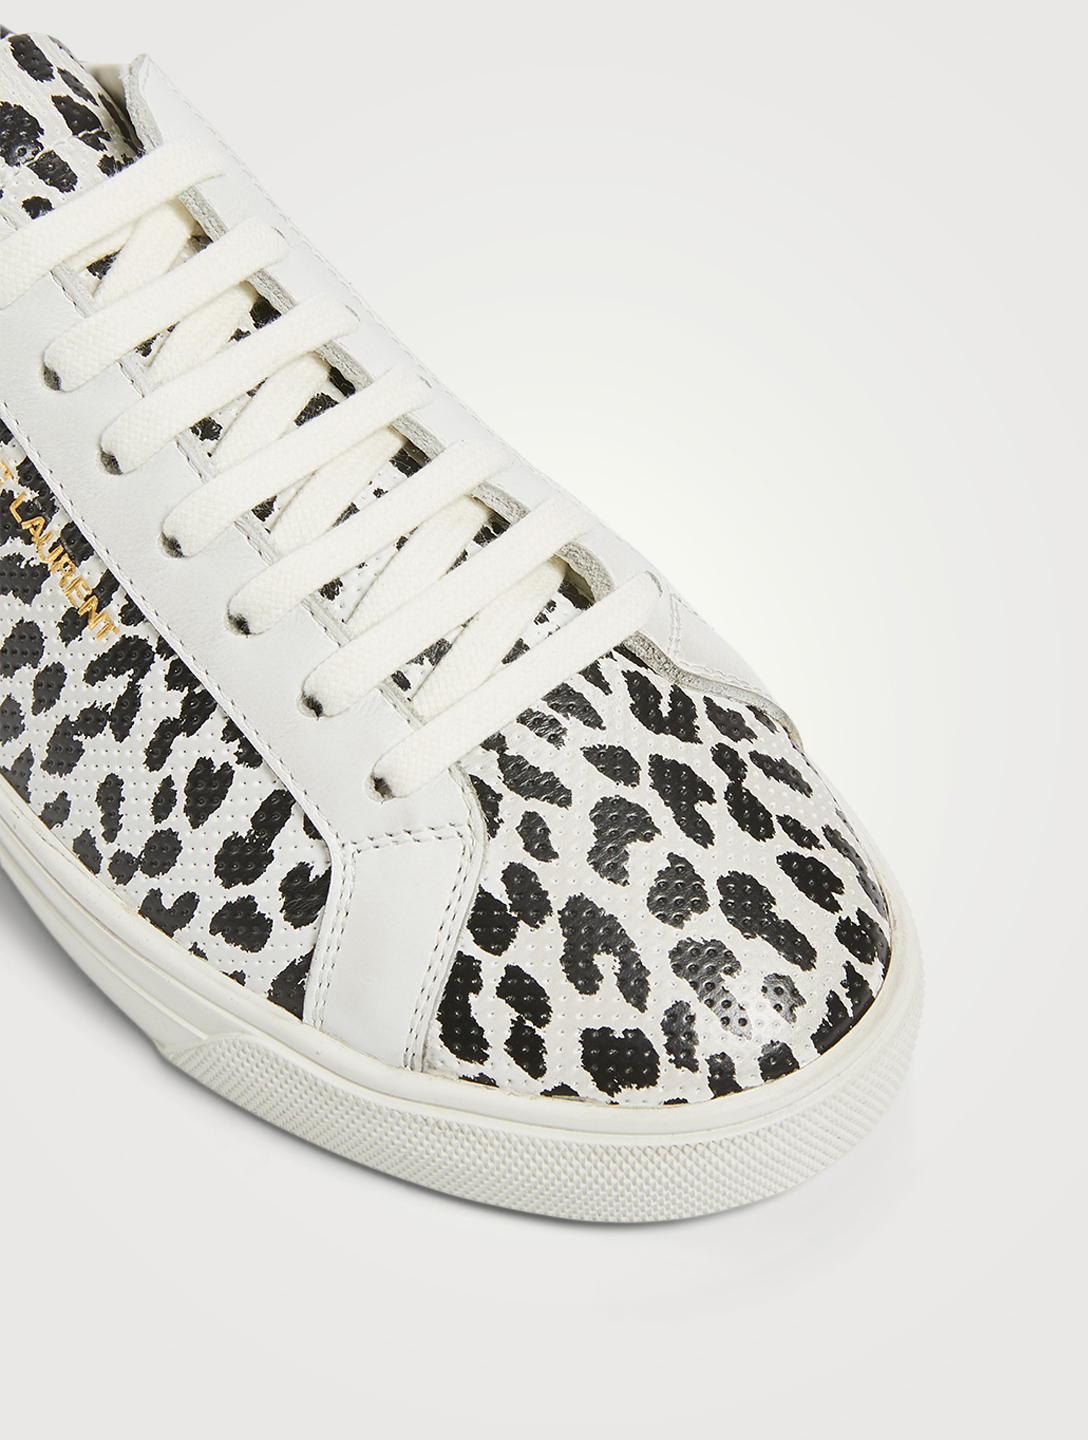 SAINT LAURENT Sneakers Andy en cuir perforé à imprimé Babycat Femmes Multi